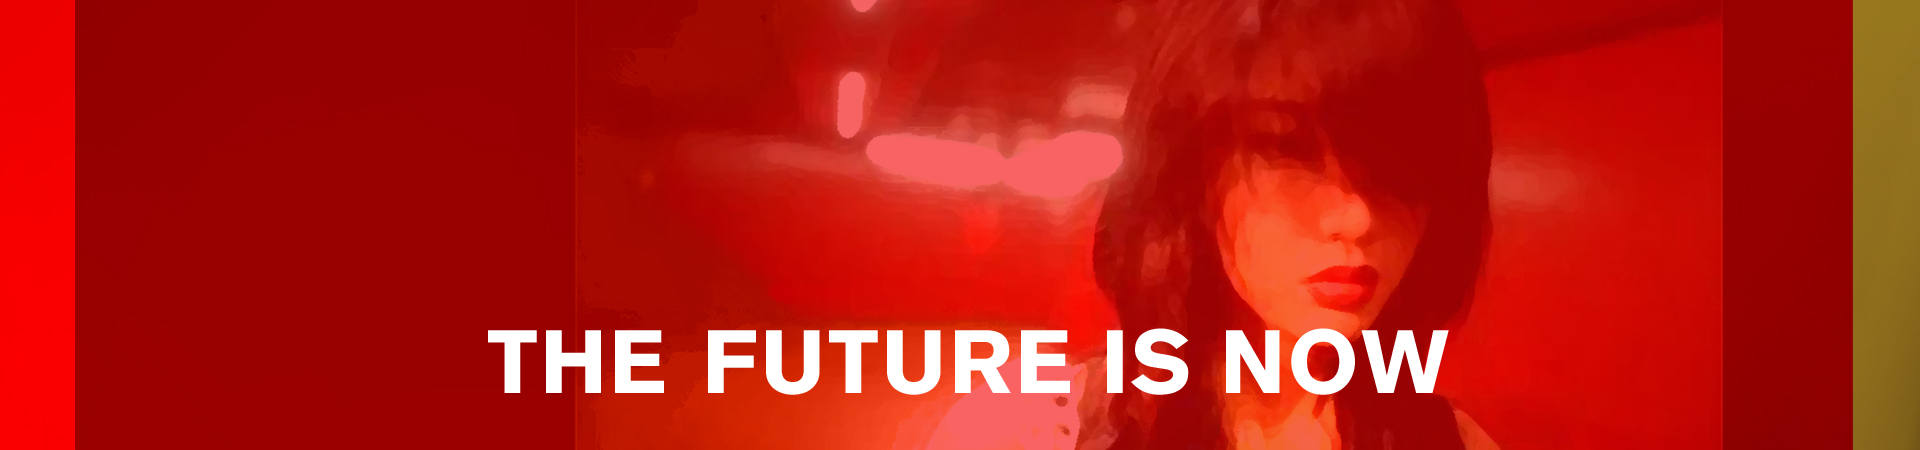 Future Now – Bog Data red